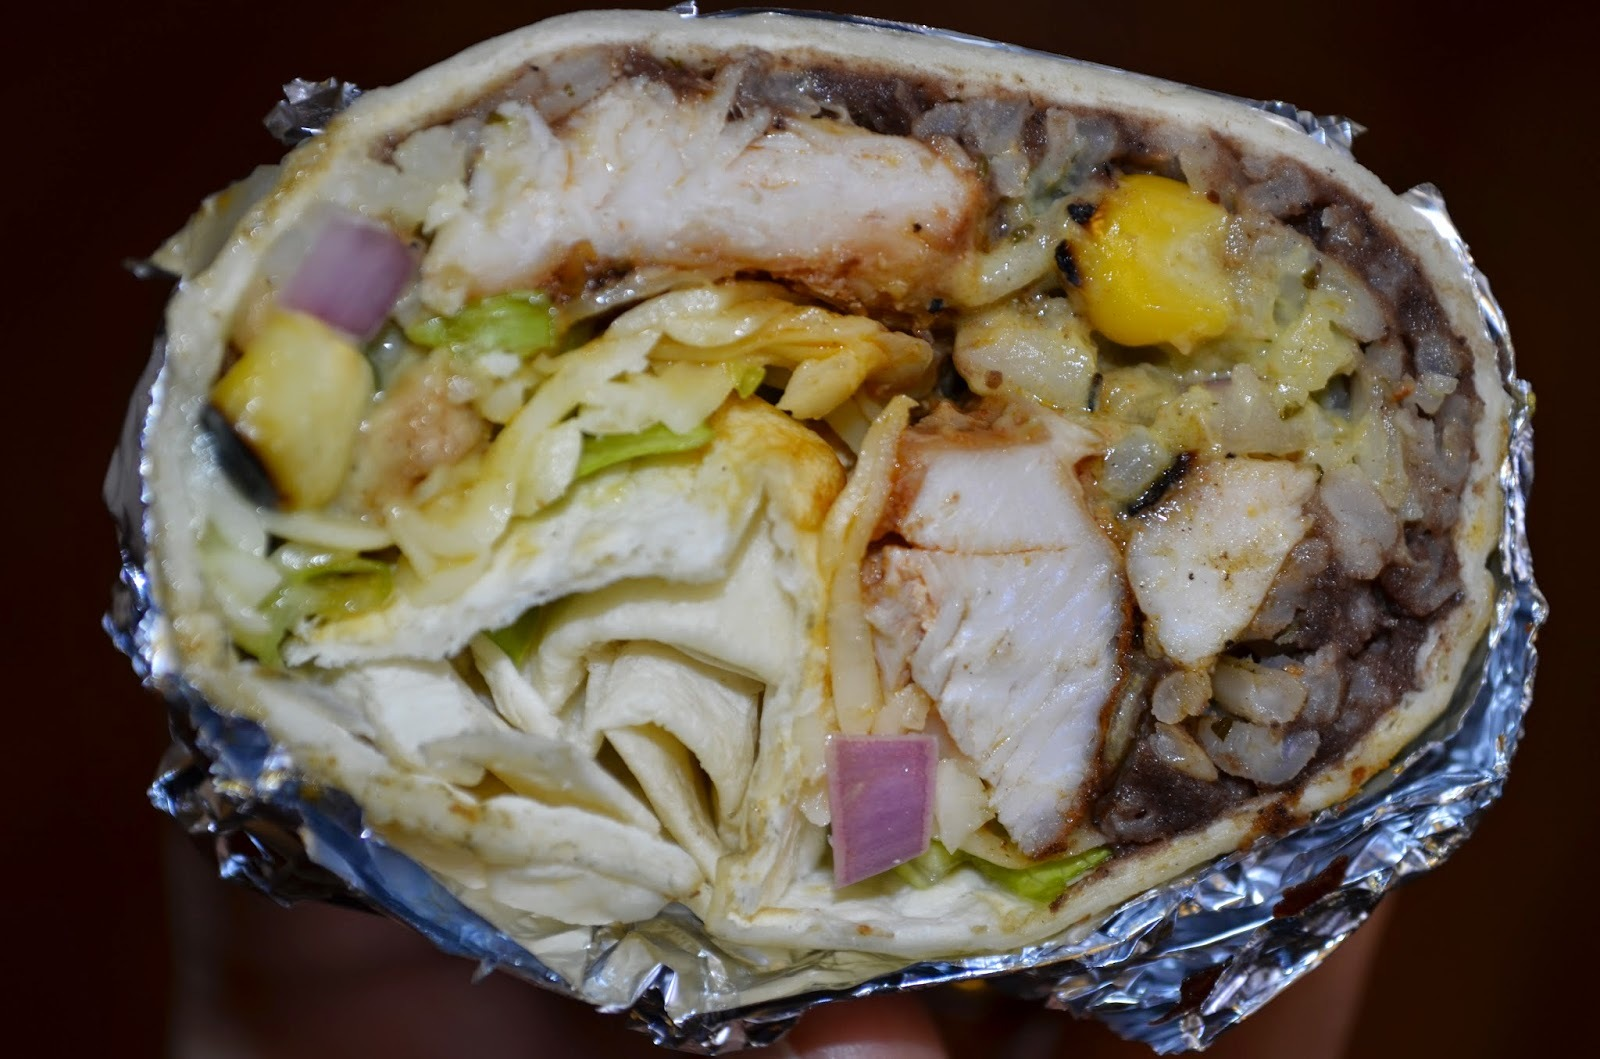 Burritos de Pollo